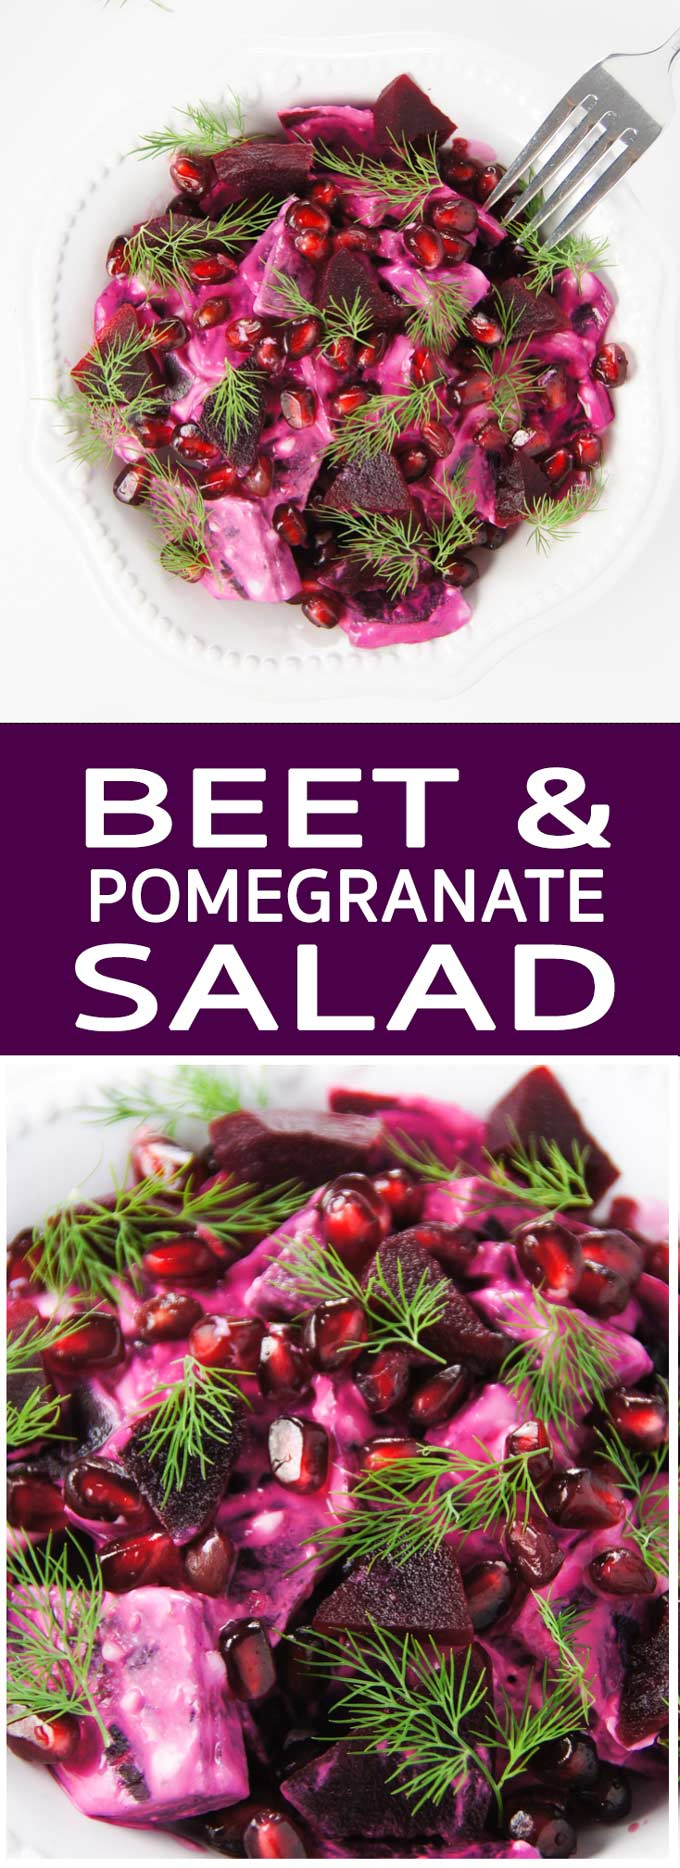 Easy Pomegranate and Beet Salad is a great idea for including more antioxidants, detox and health boosting ingredients in a 15 min meal.